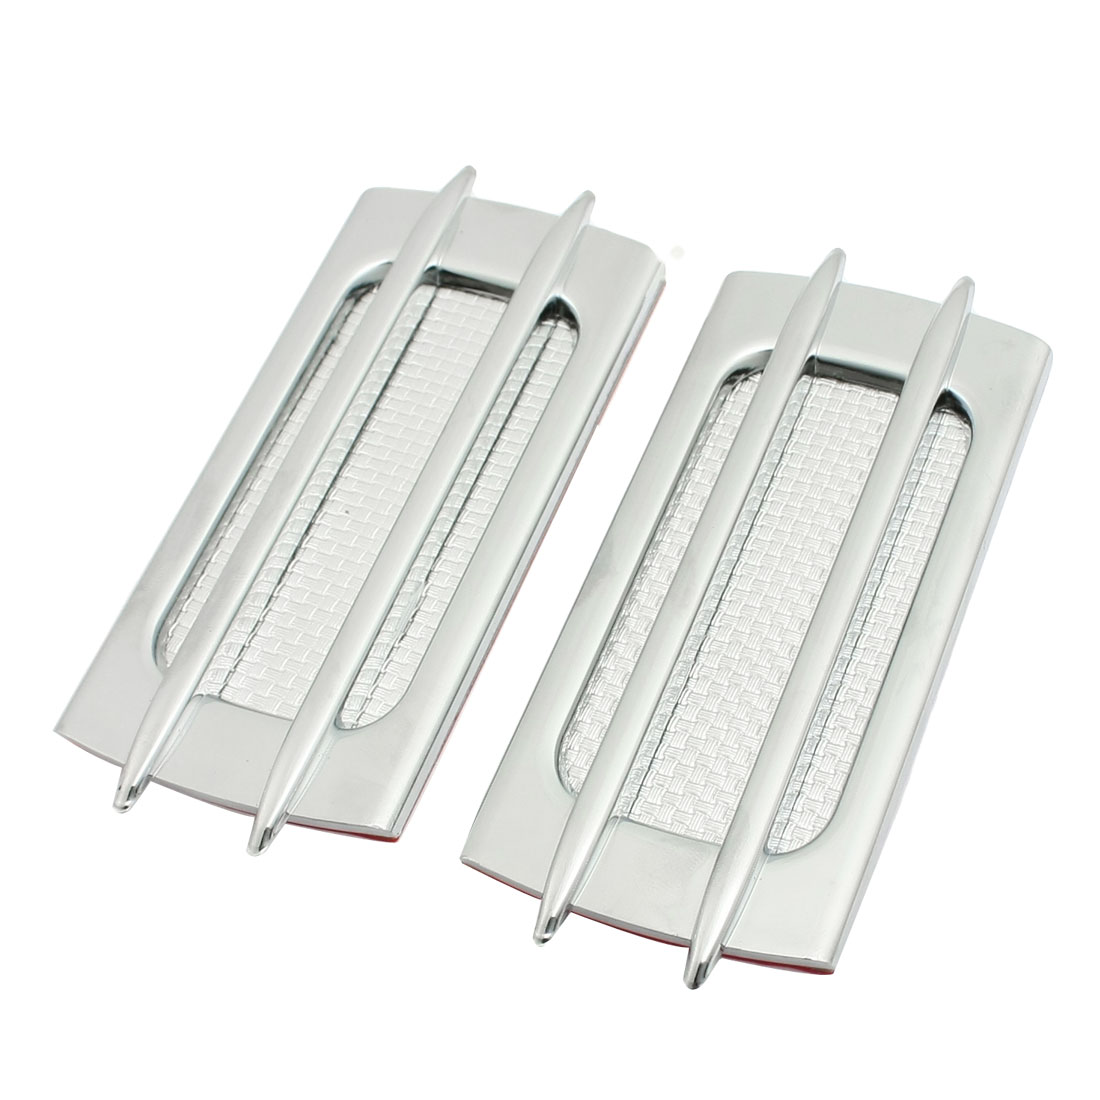 2 Pcs Auto Car Silver Tone Plastic Protective Air Flow Sticker Decor